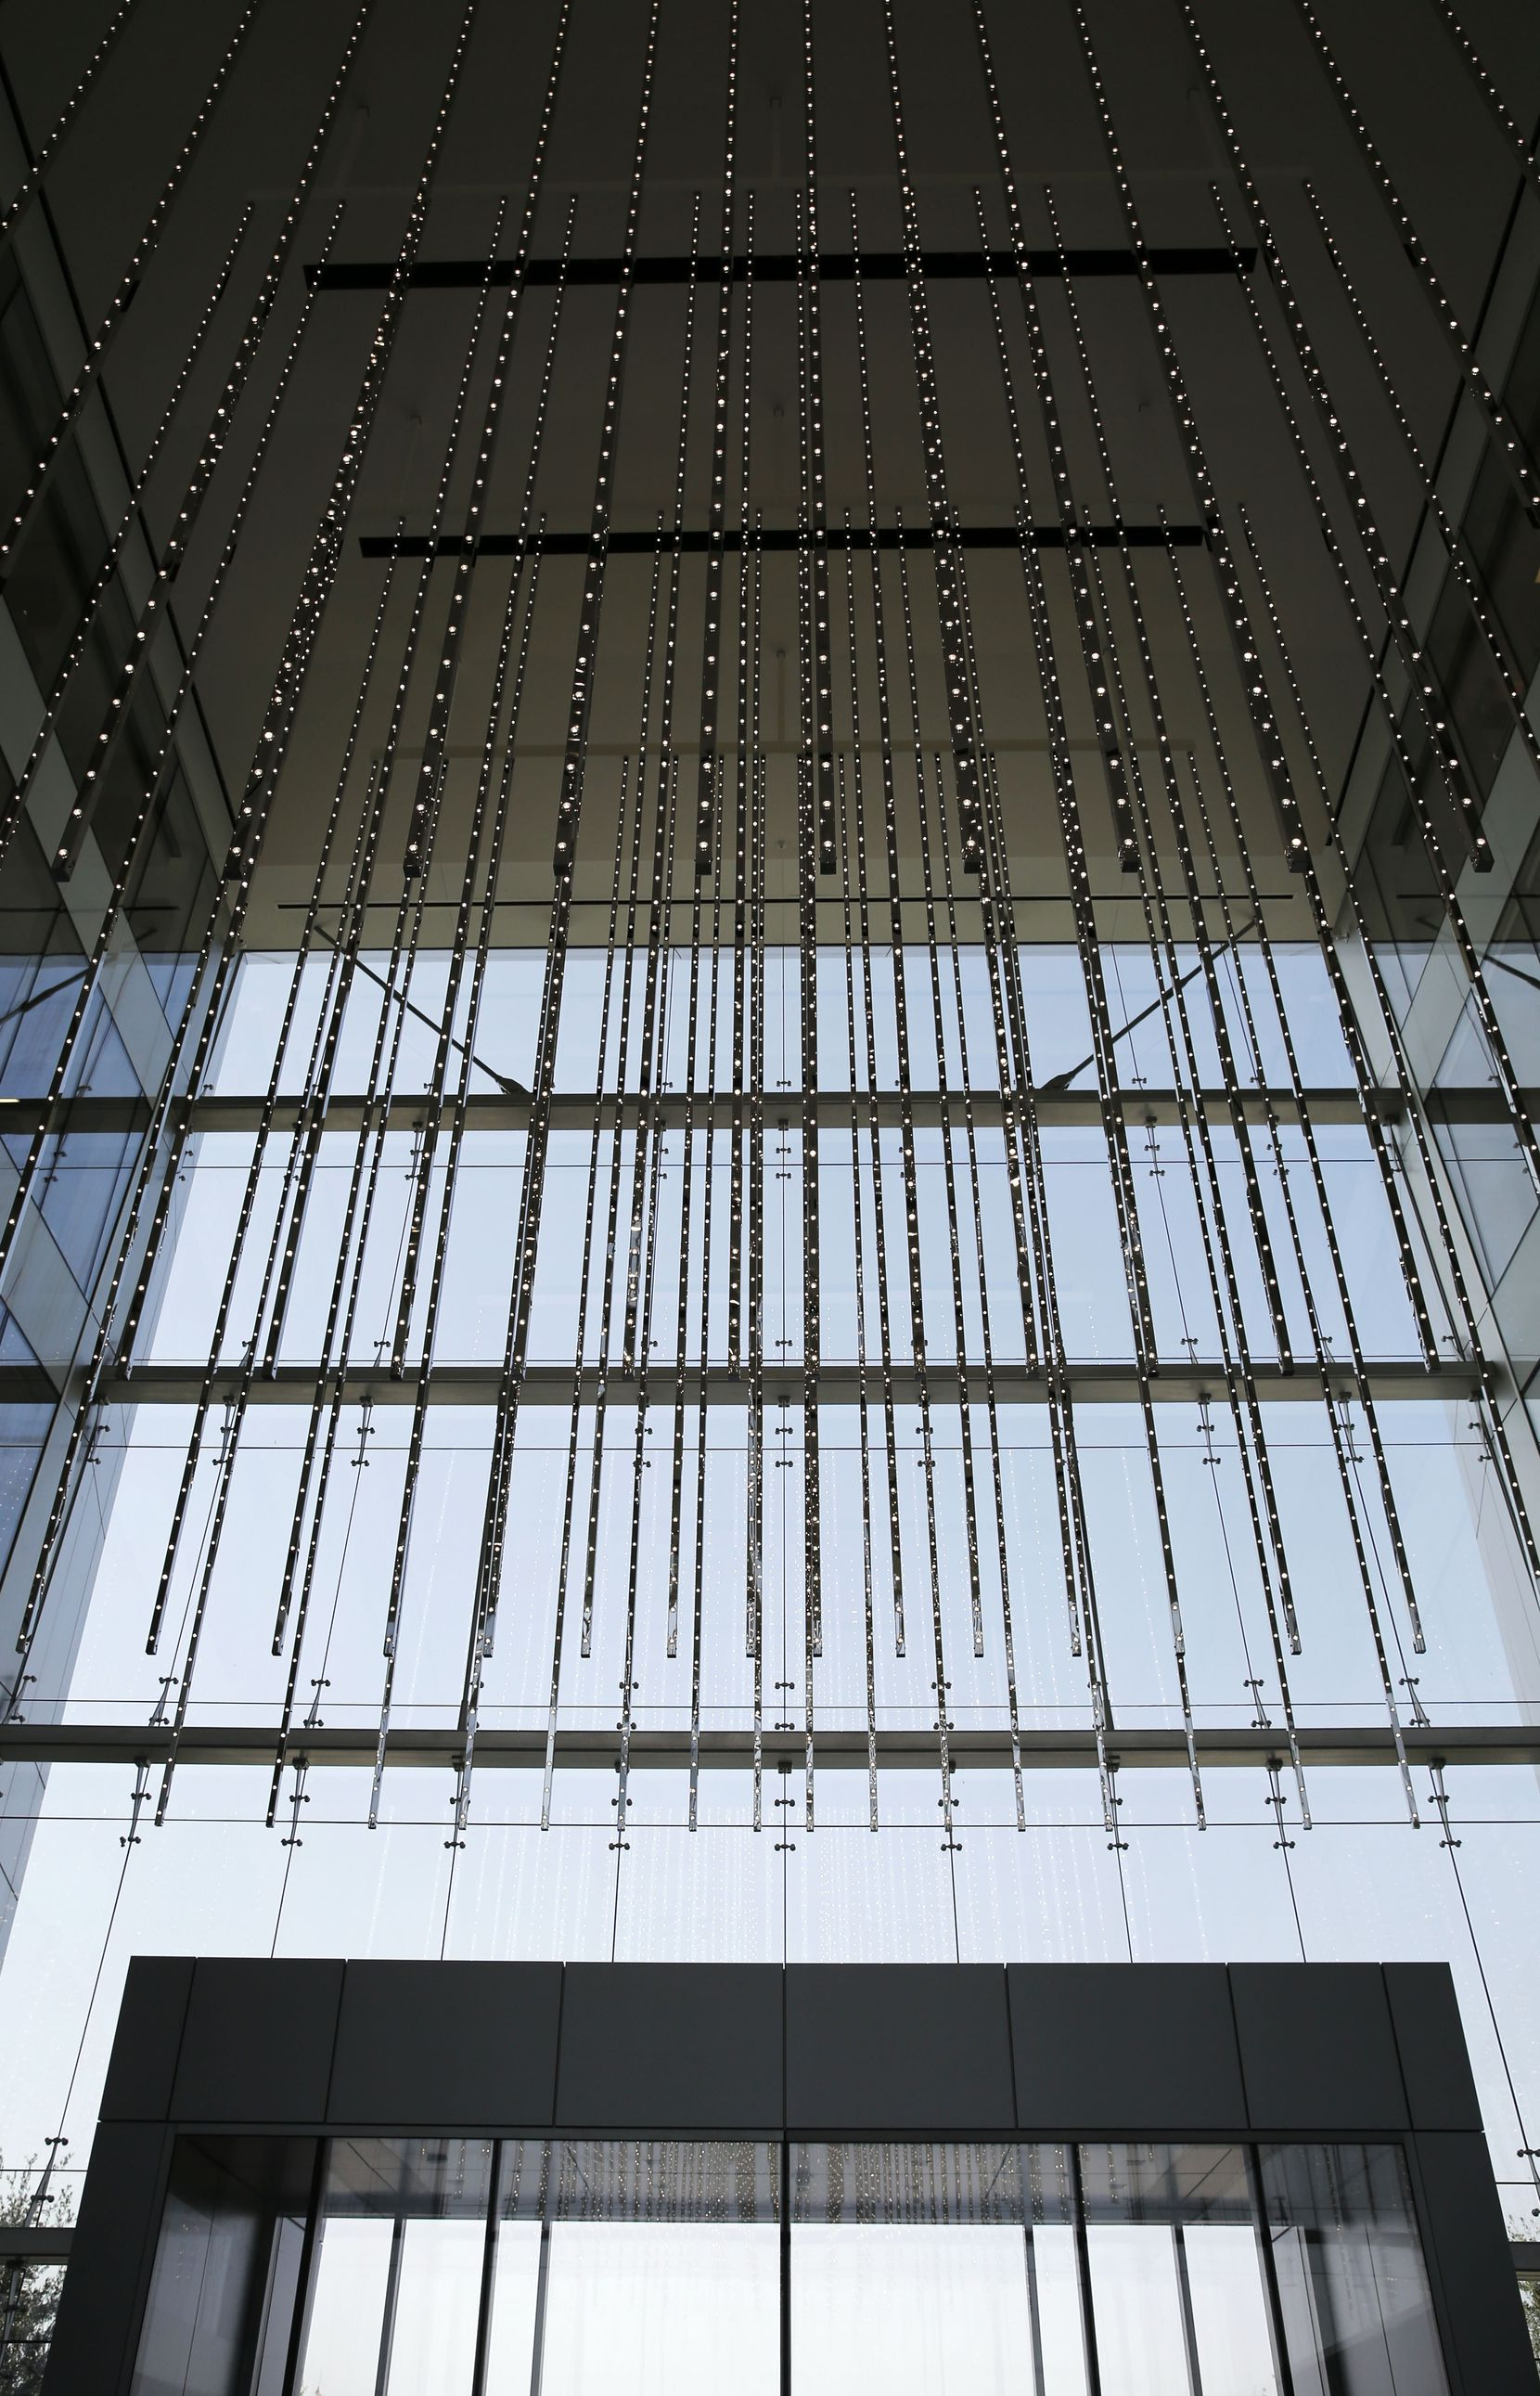 Volume Frisco (2016), by Leo Villareal, an art installation that is a volumetric LED display, in the Dallas Cowboys headquarters lobby at The Star in Frisco.